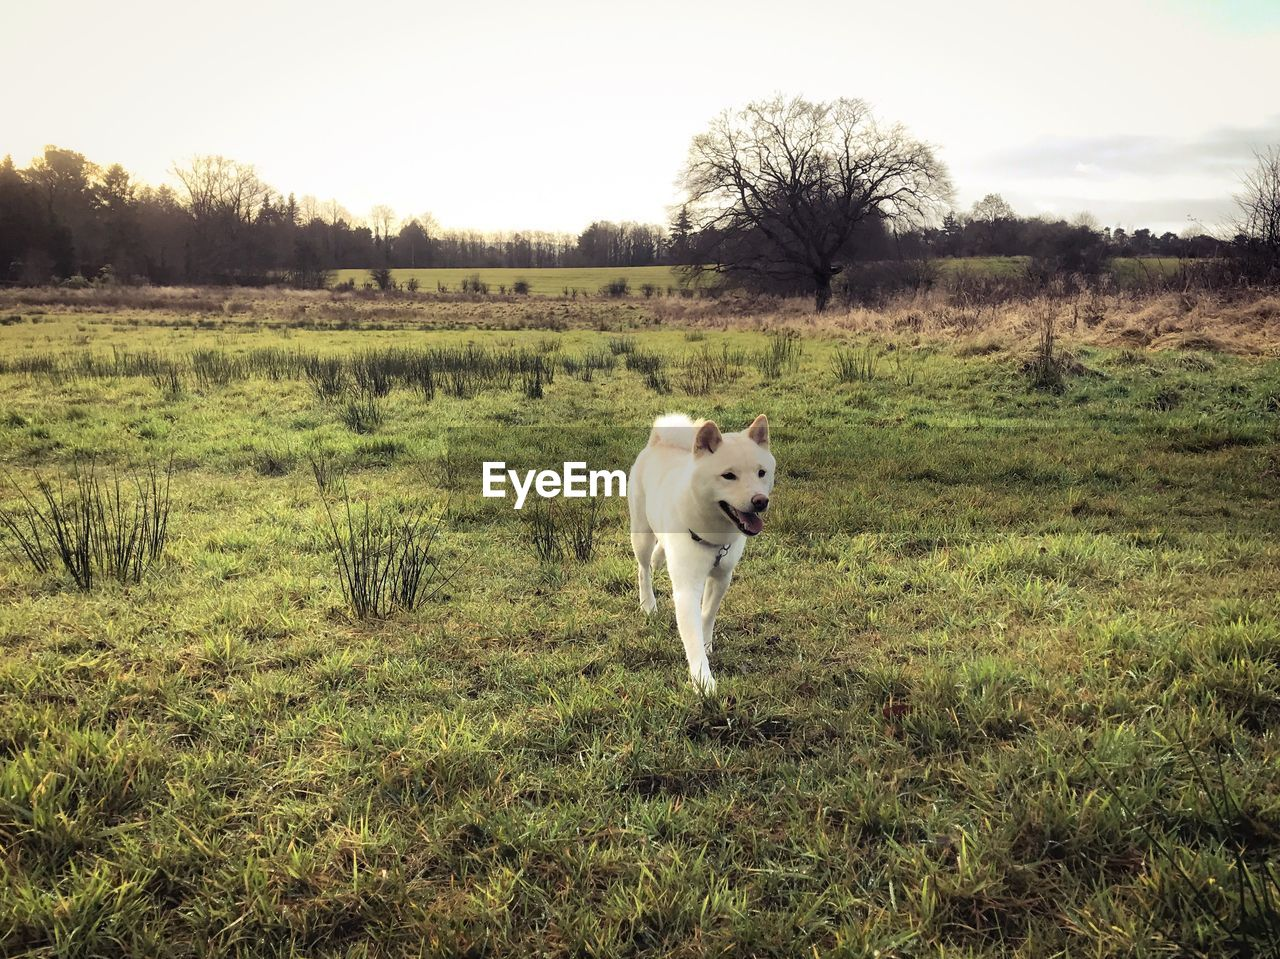 dog, domestic animals, pets, animal themes, grass, field, one animal, mammal, nature, landscape, no people, outdoors, growth, day, tree, sky, full length